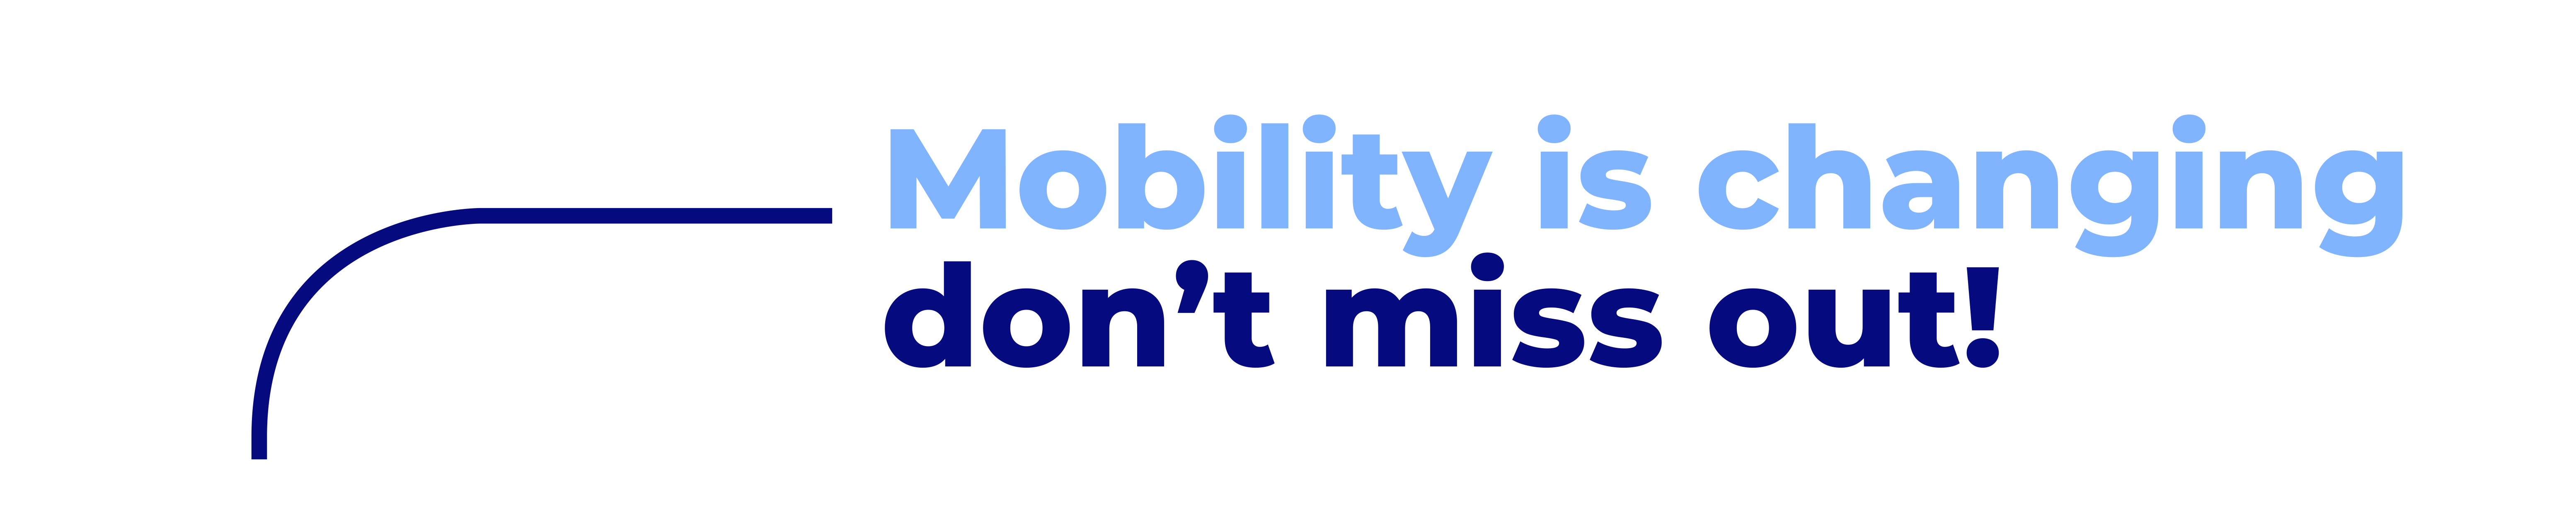 Mobility_is_changing